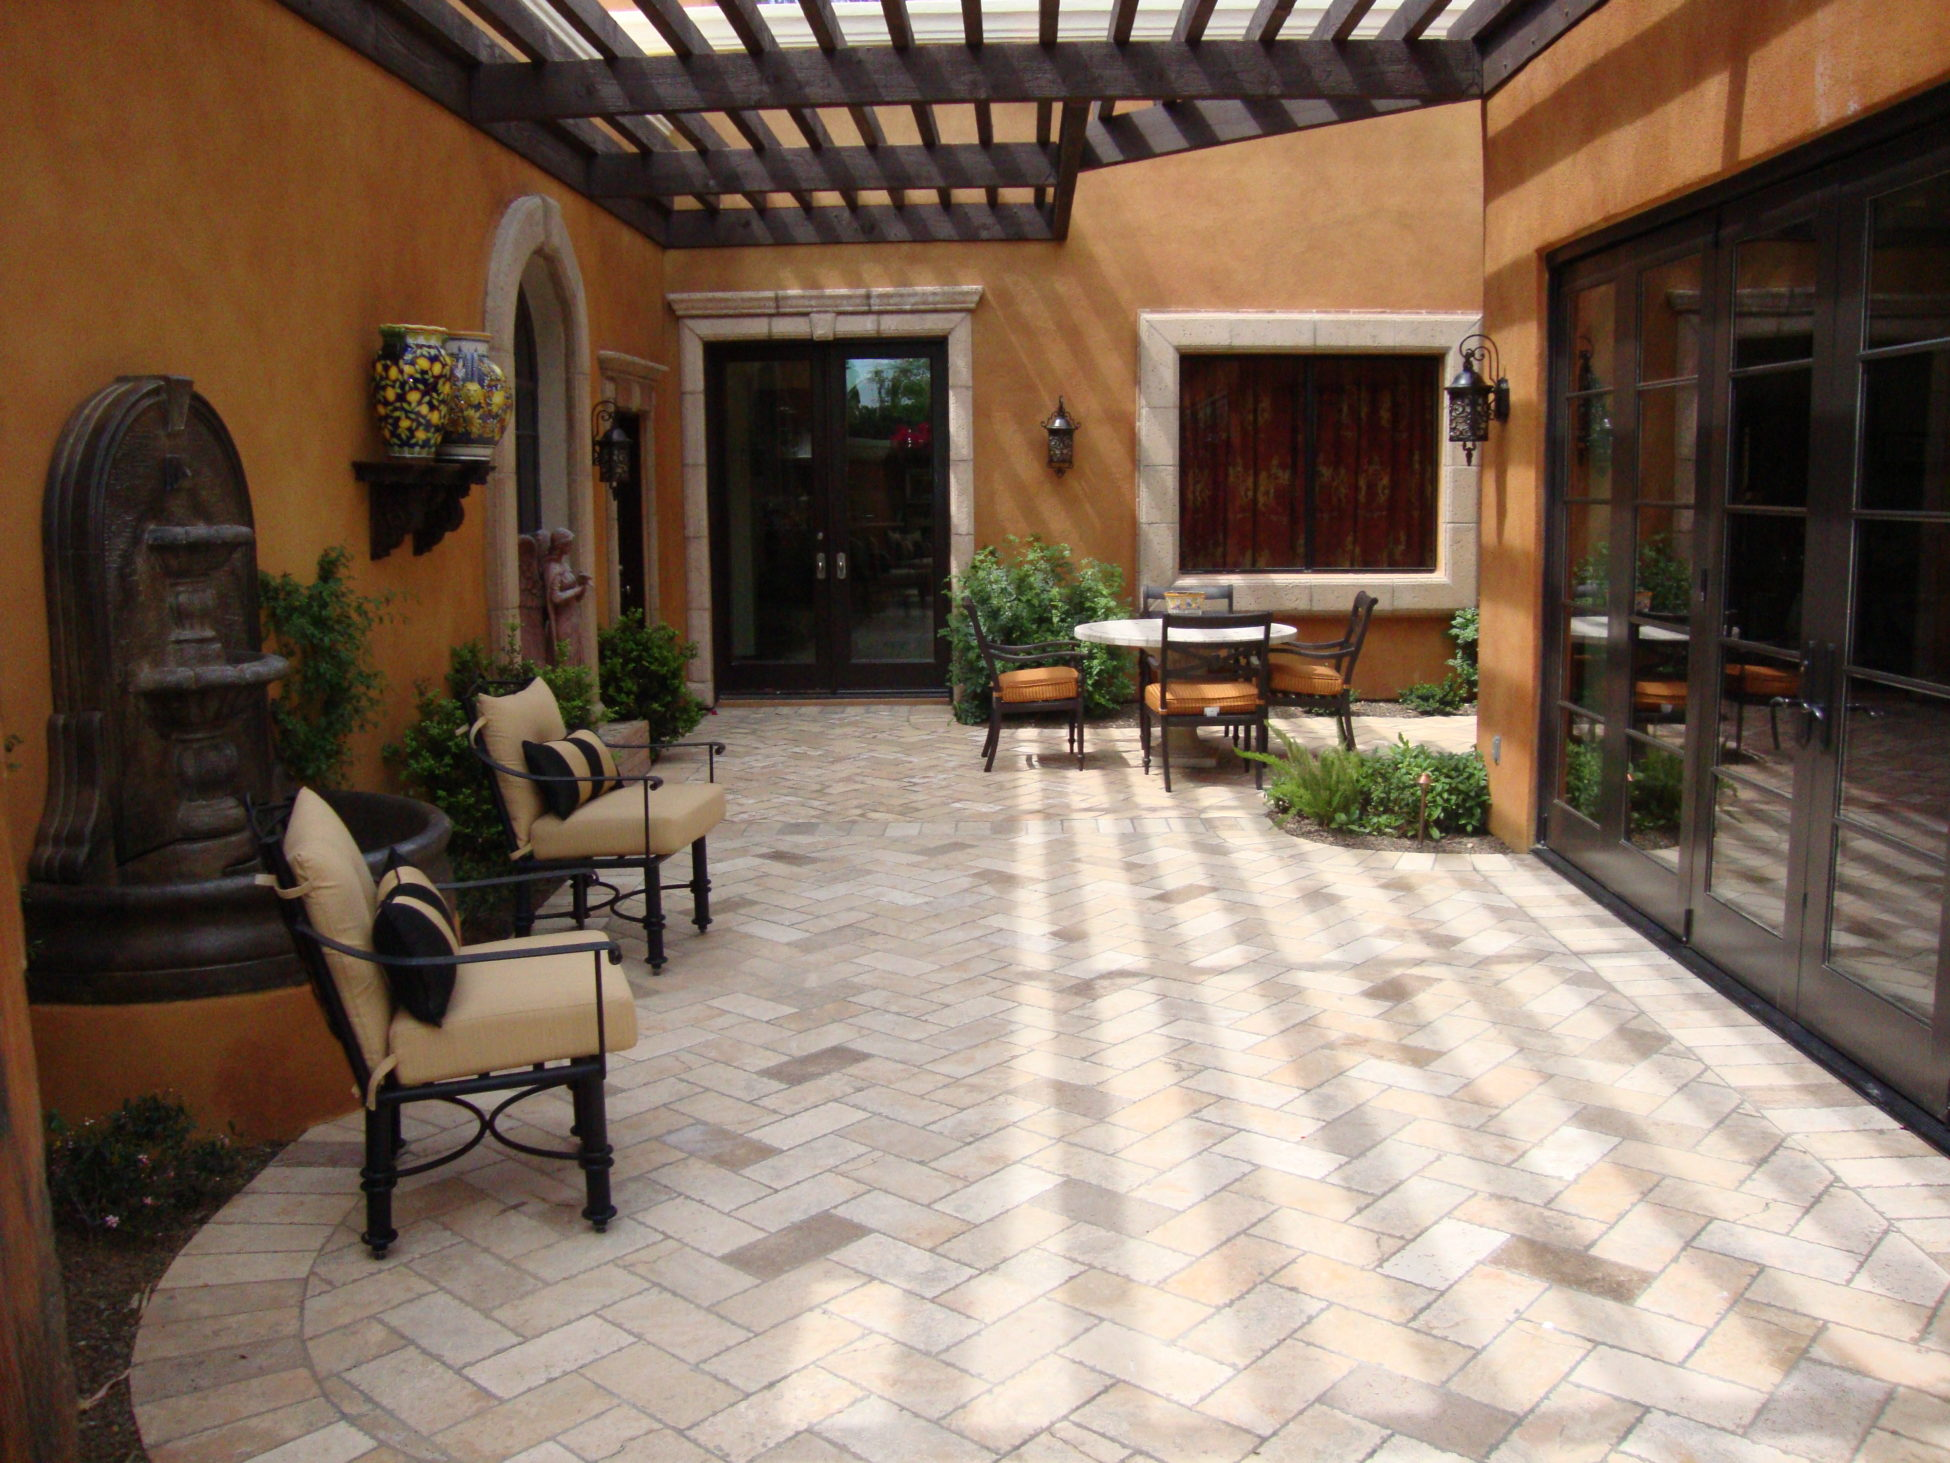 Paver Designs and Paver Ideas for Your Backyard Patios on Paver Patio Designs id=15359